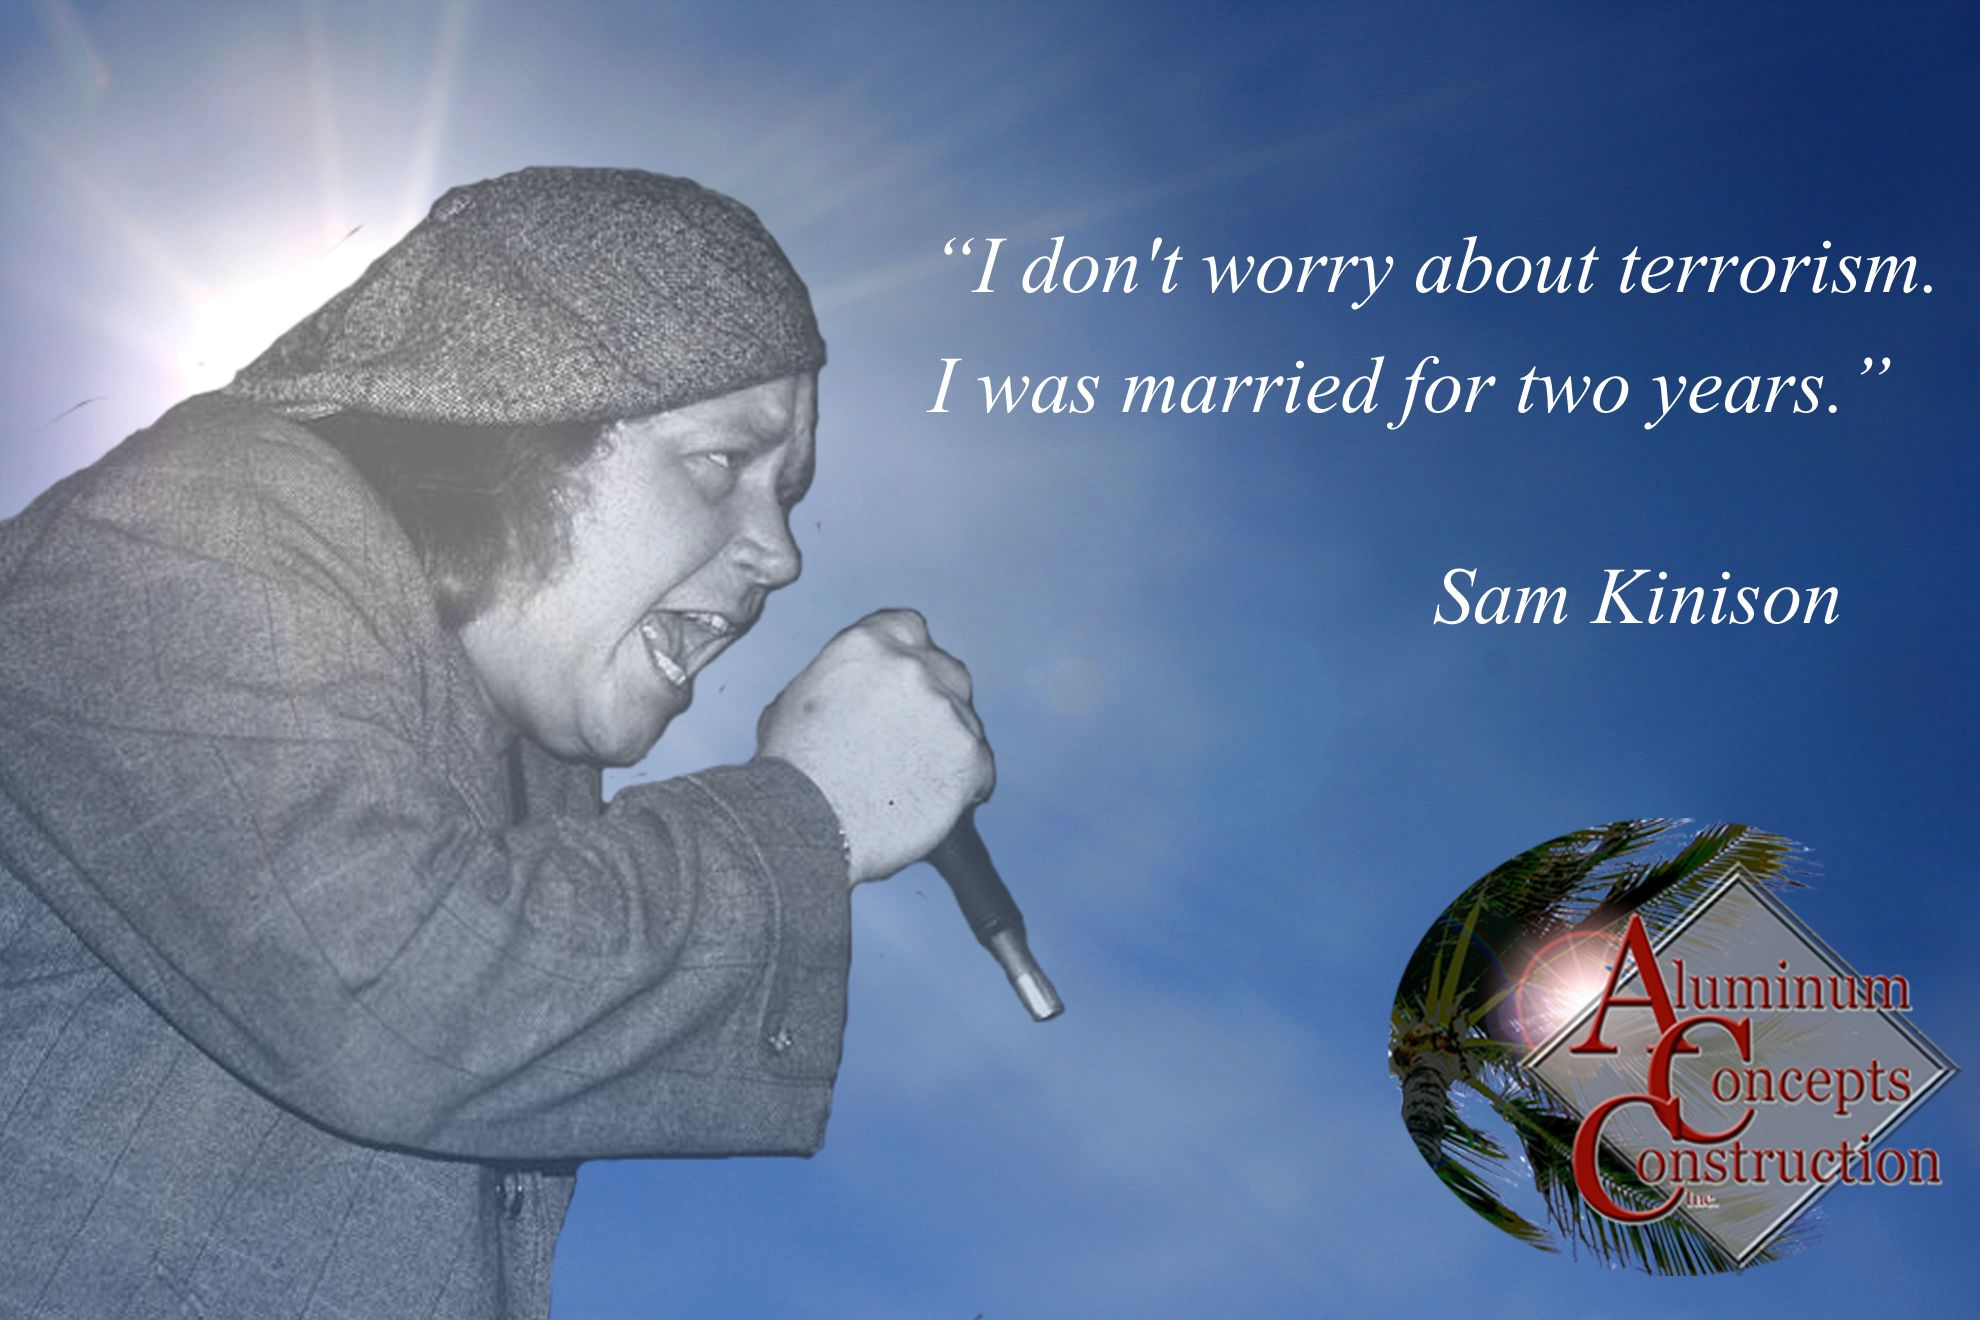 Sam kinison accident scene photos - Sam Kinison